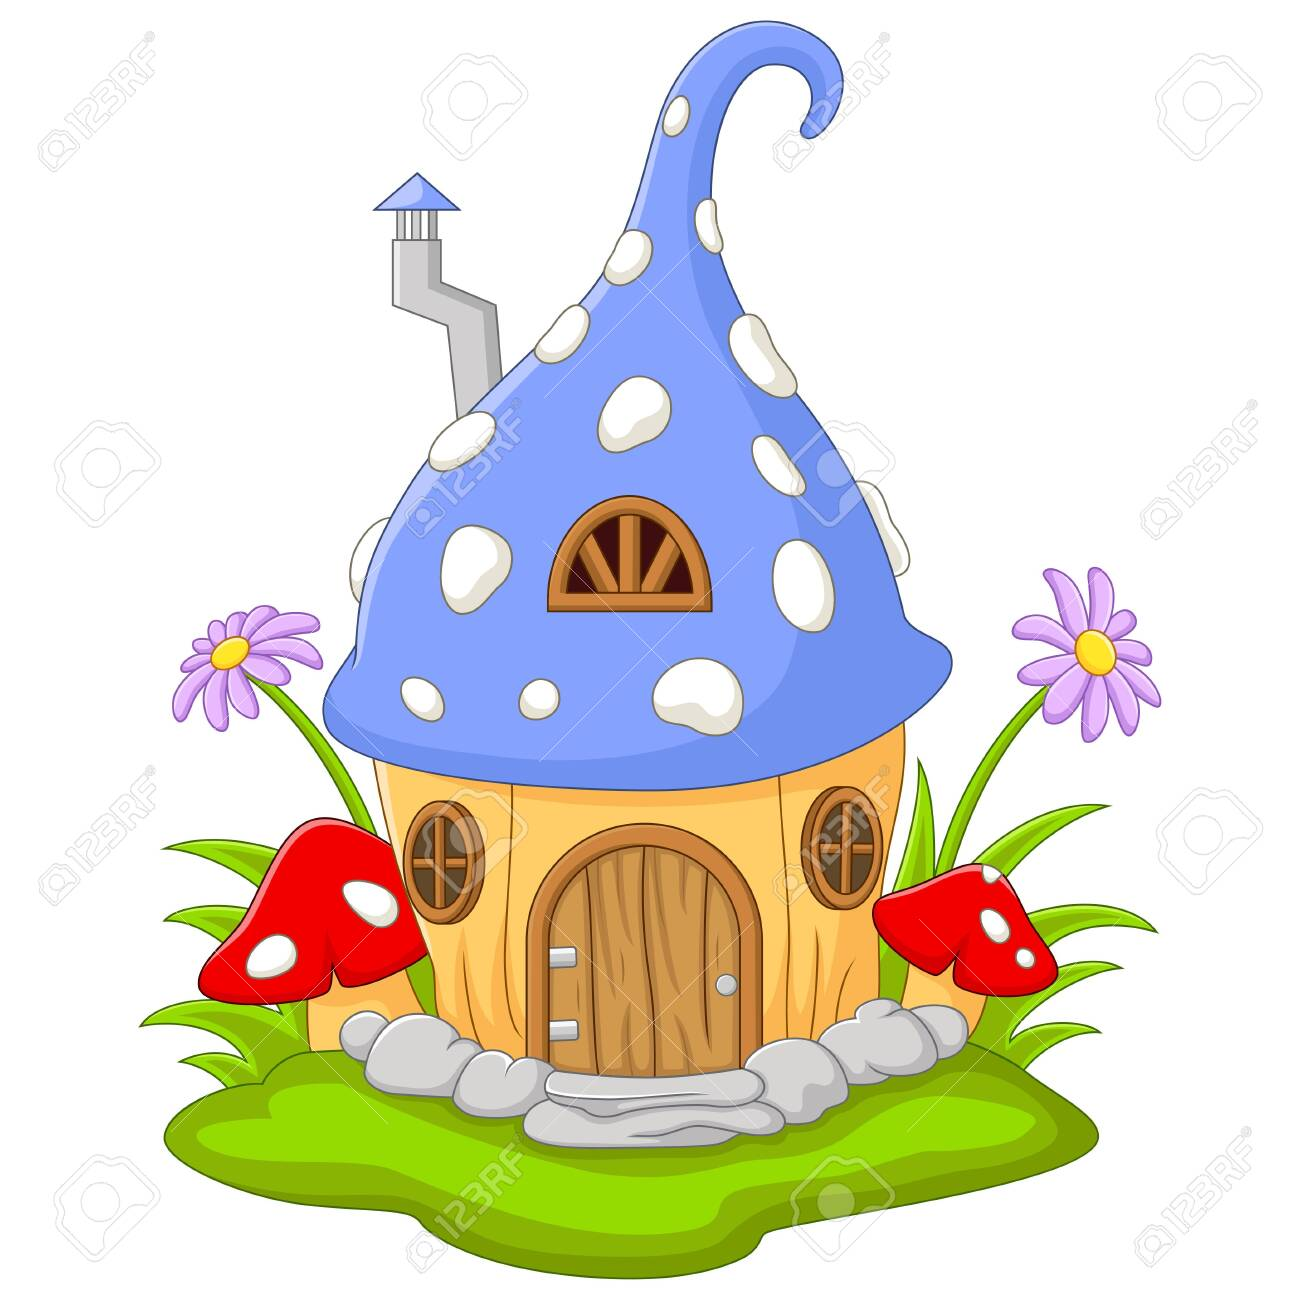 Cartoon Fairy house in the shape of a hat - 152016359